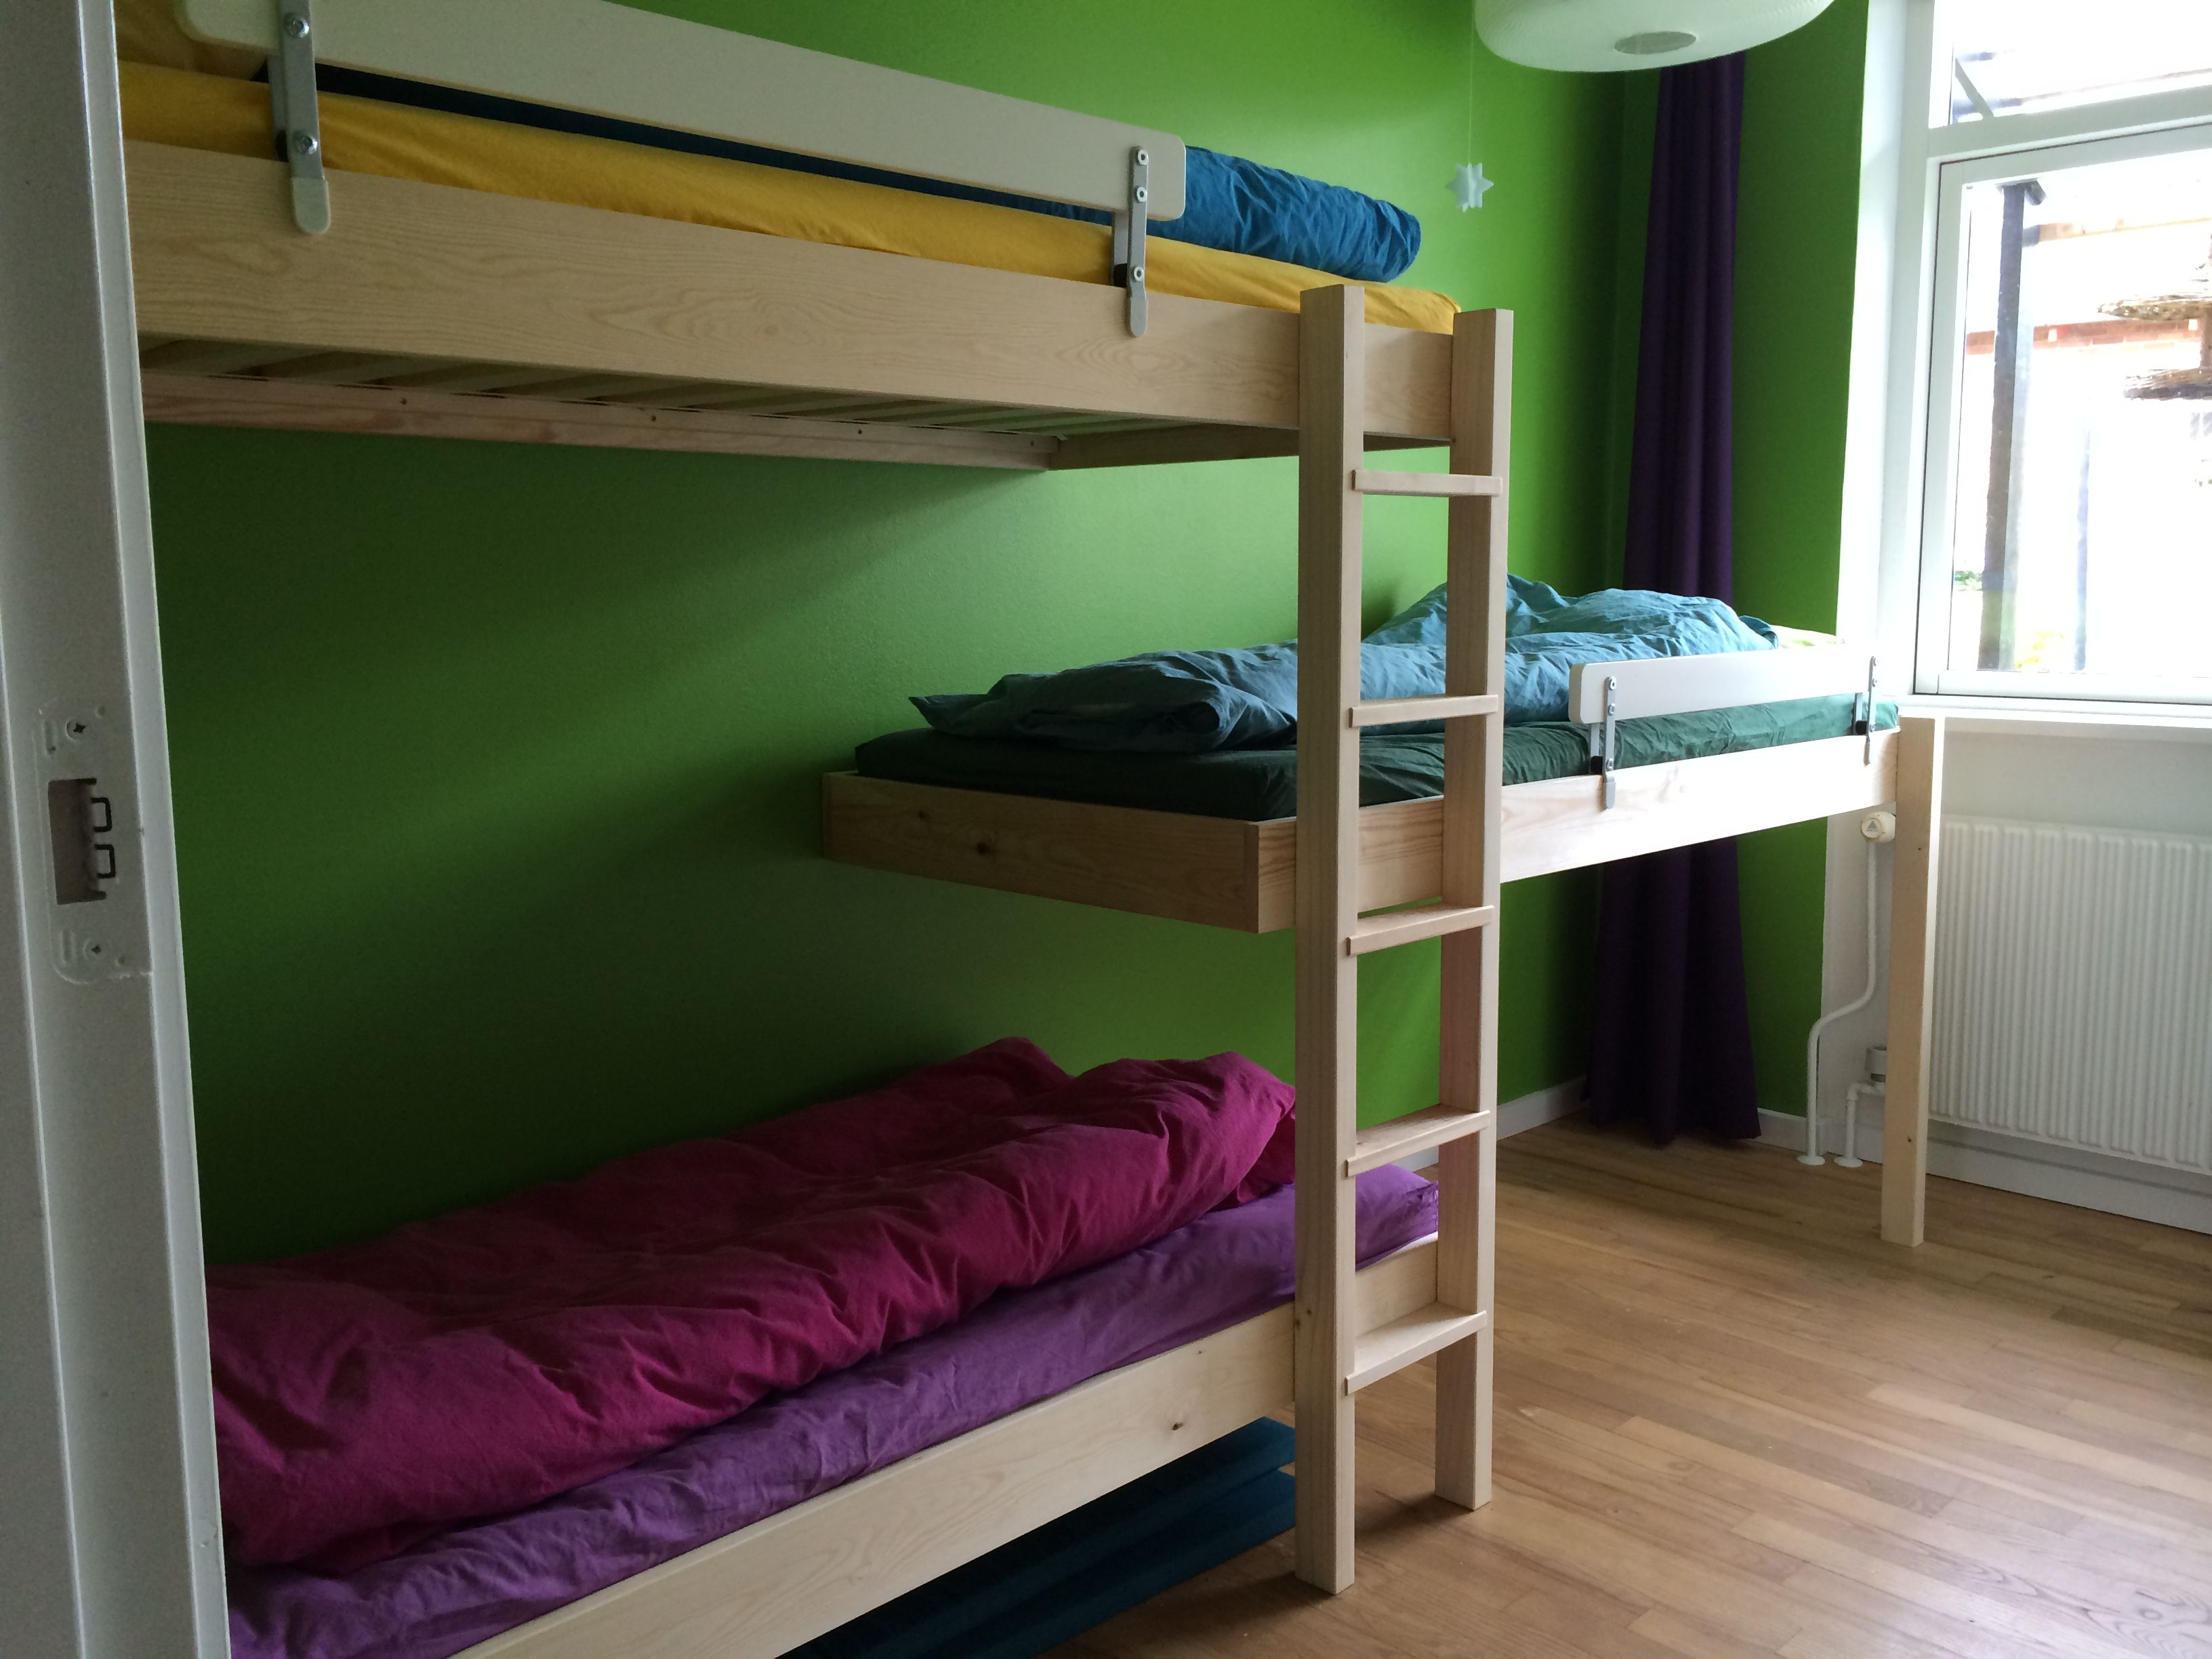 Triple bunk bed in room with low